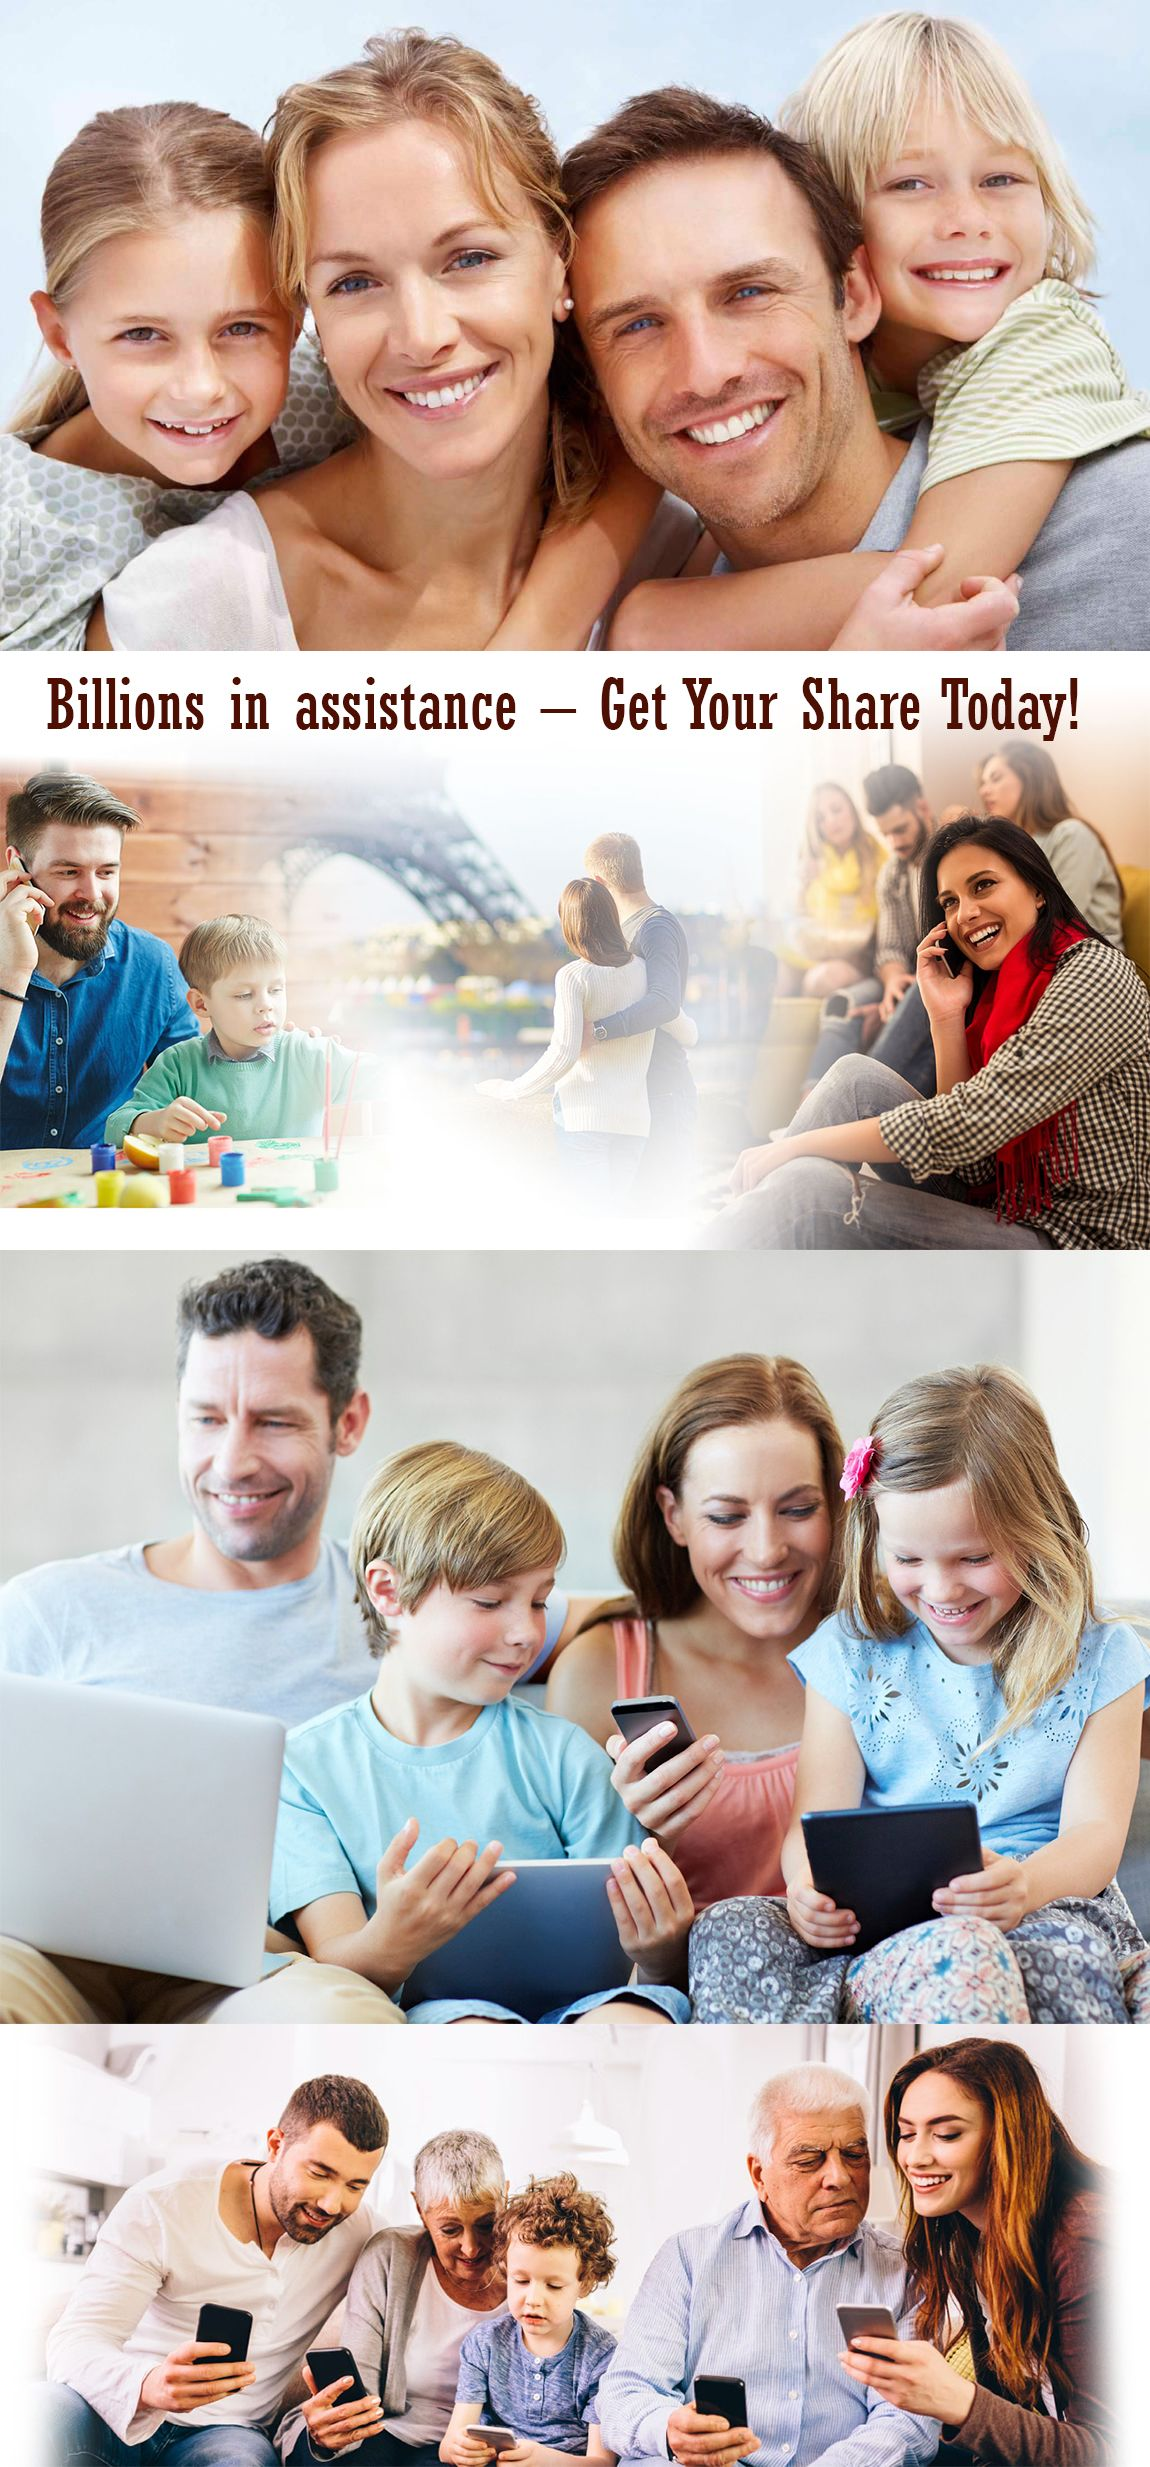 Get the assistance needed for your family immediately